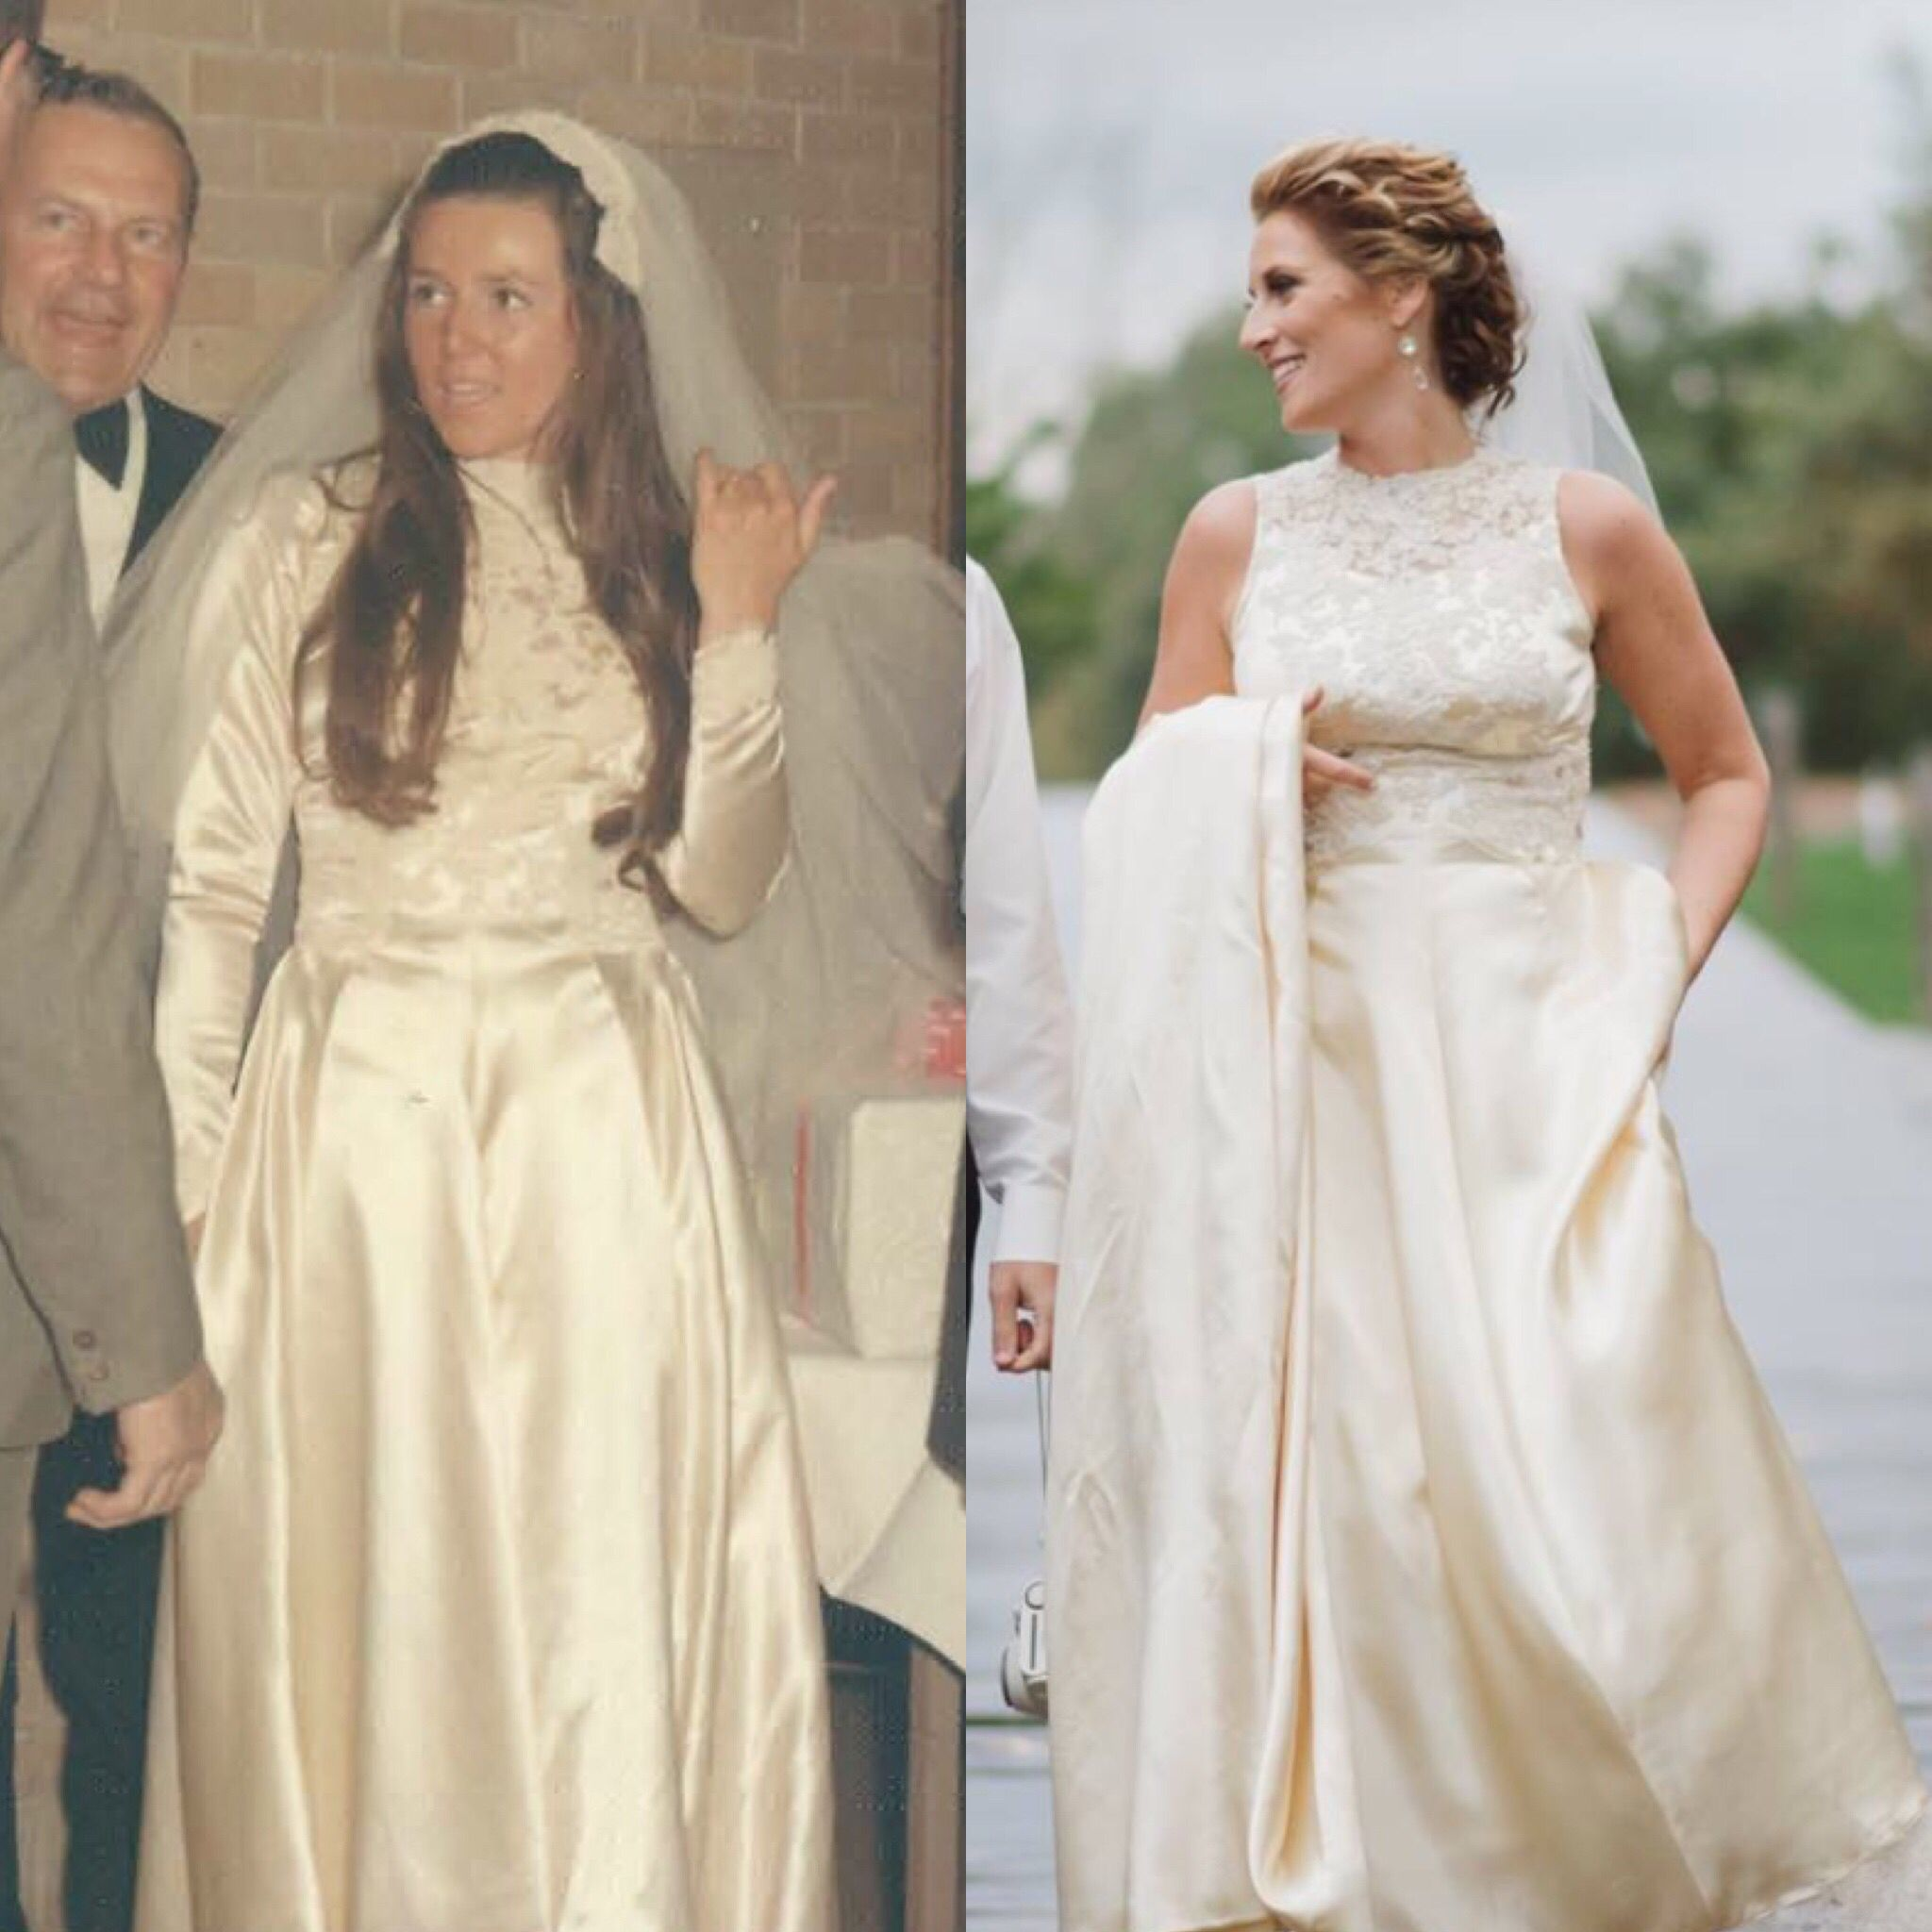 Funny Old Woman Wedding Gowns: The Same Dress Worn 45 Years Later. Although, The Dress Is